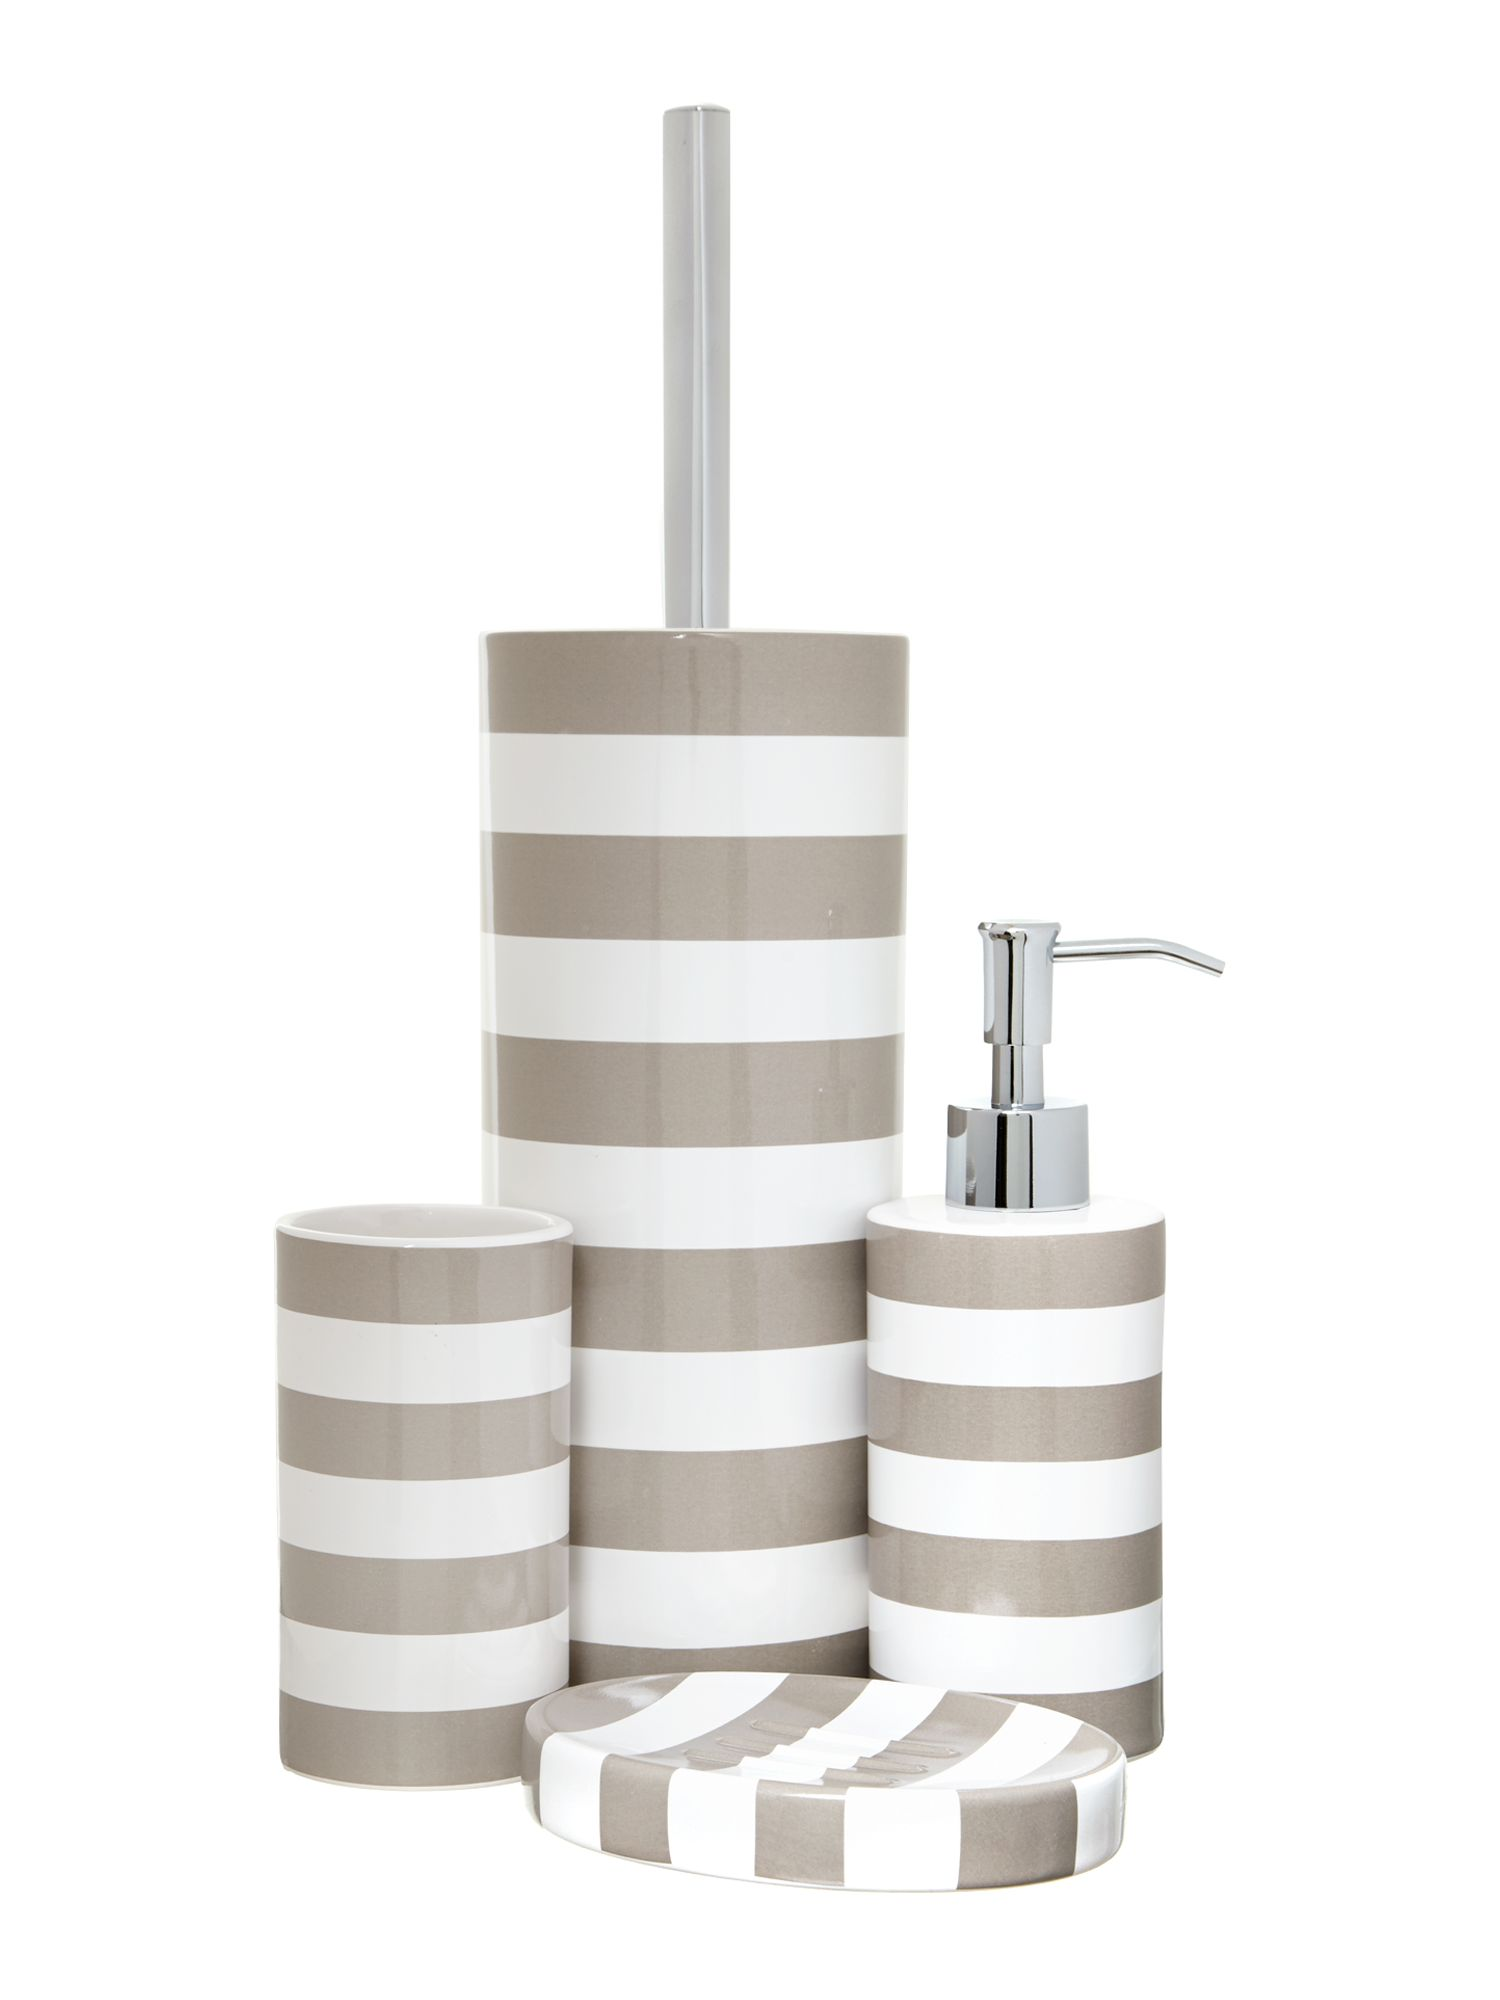 Striped bathroom accessories in natural